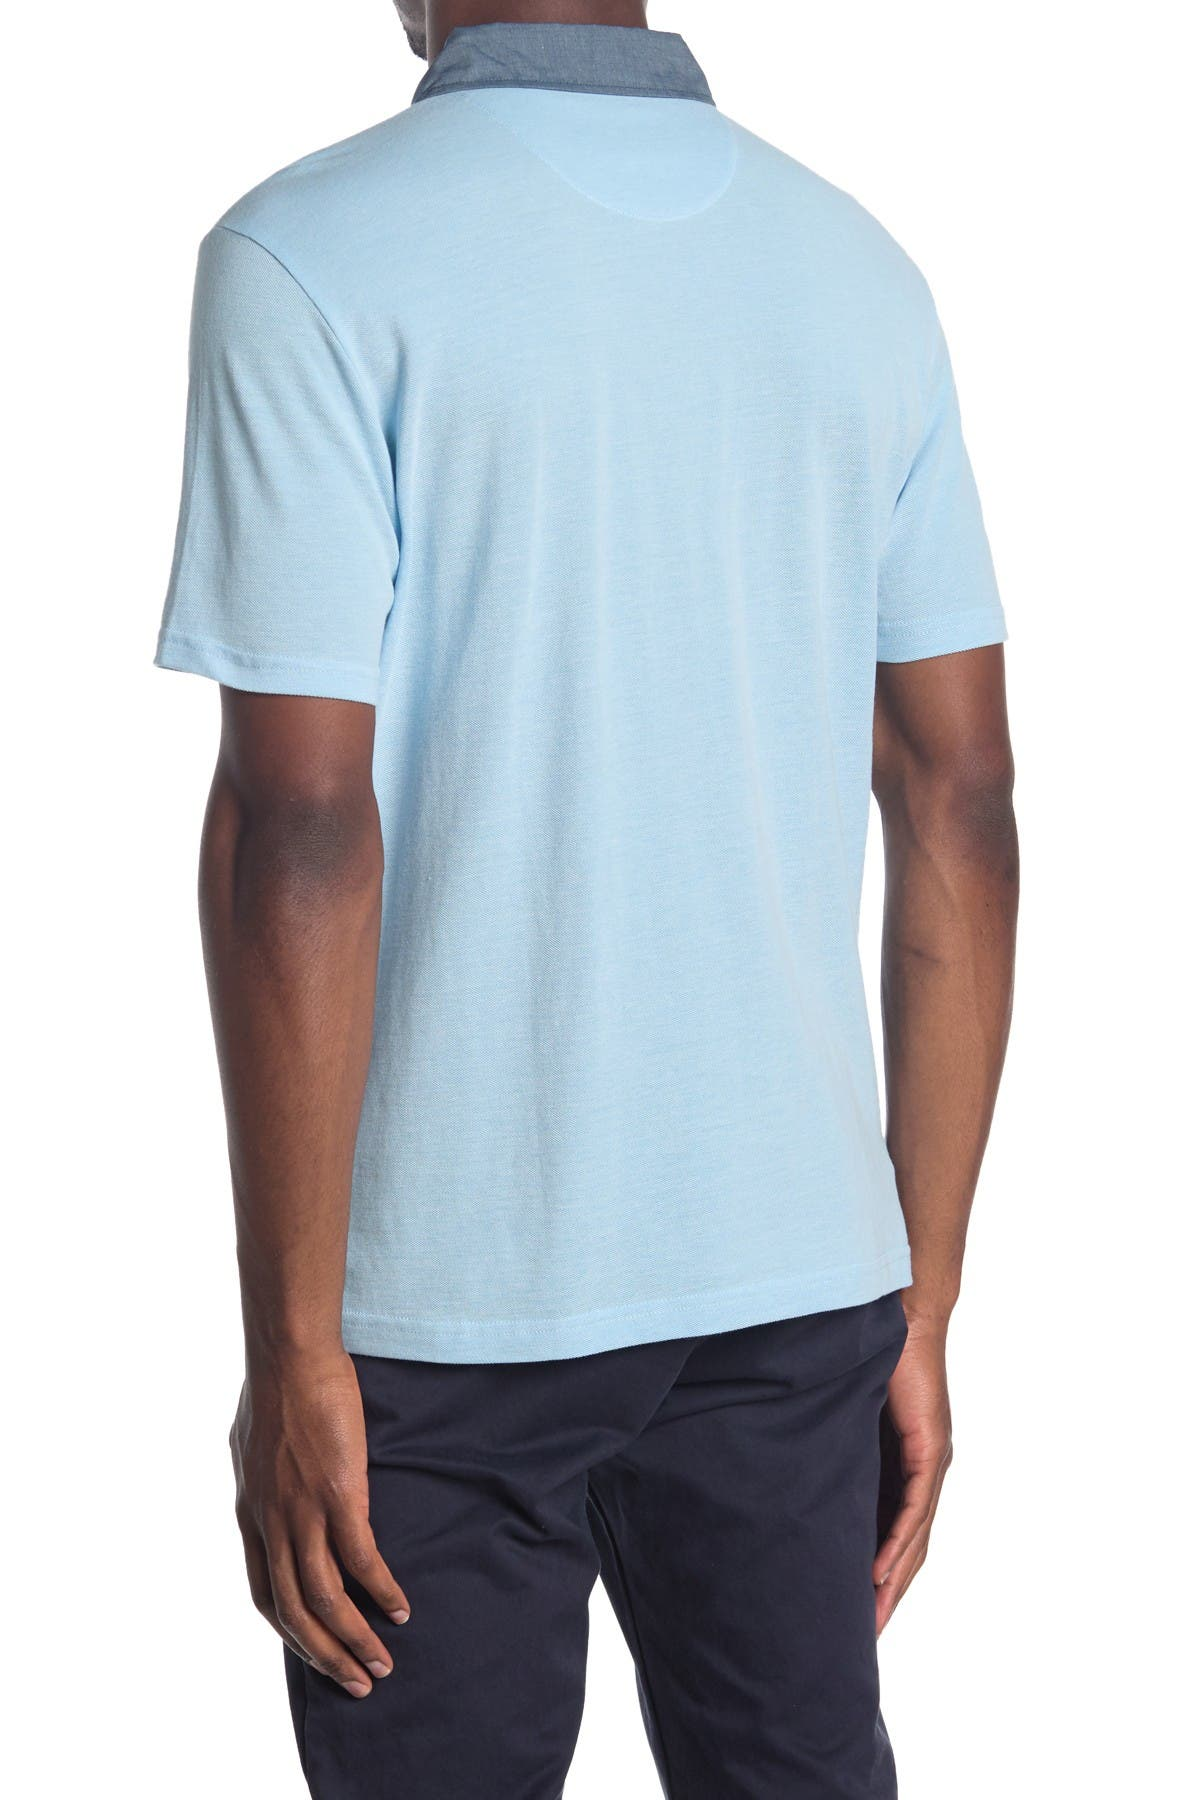 Image of Original Penguin Short Sleeve Birdseye Polo Shirt